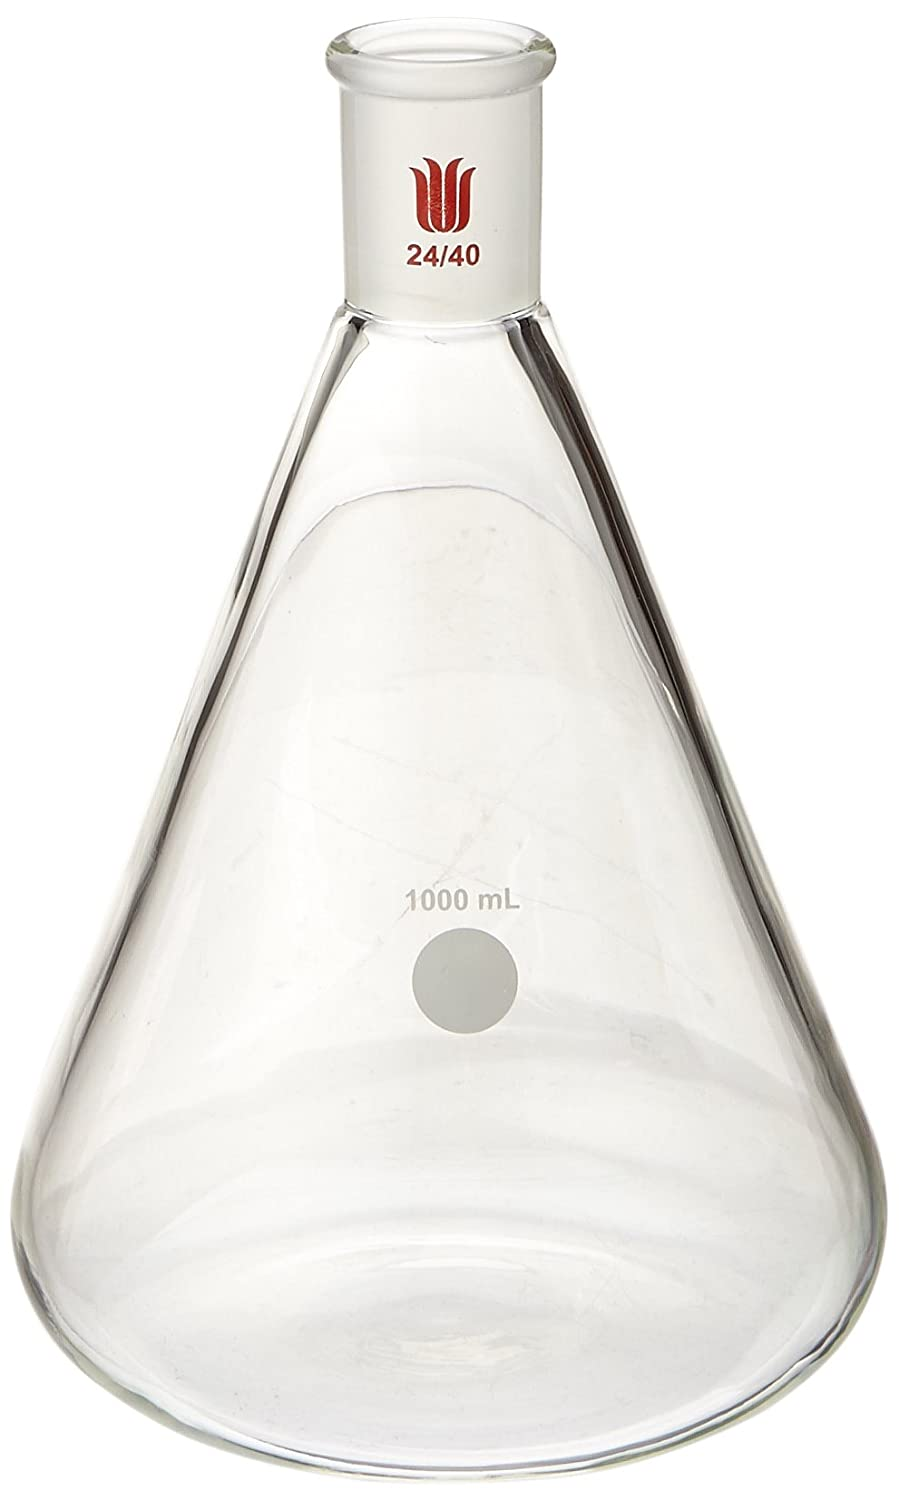 Kemtech F664000 Synthware Erlenmeyer Flask, 1000 mL, 24/40 Outer Joint